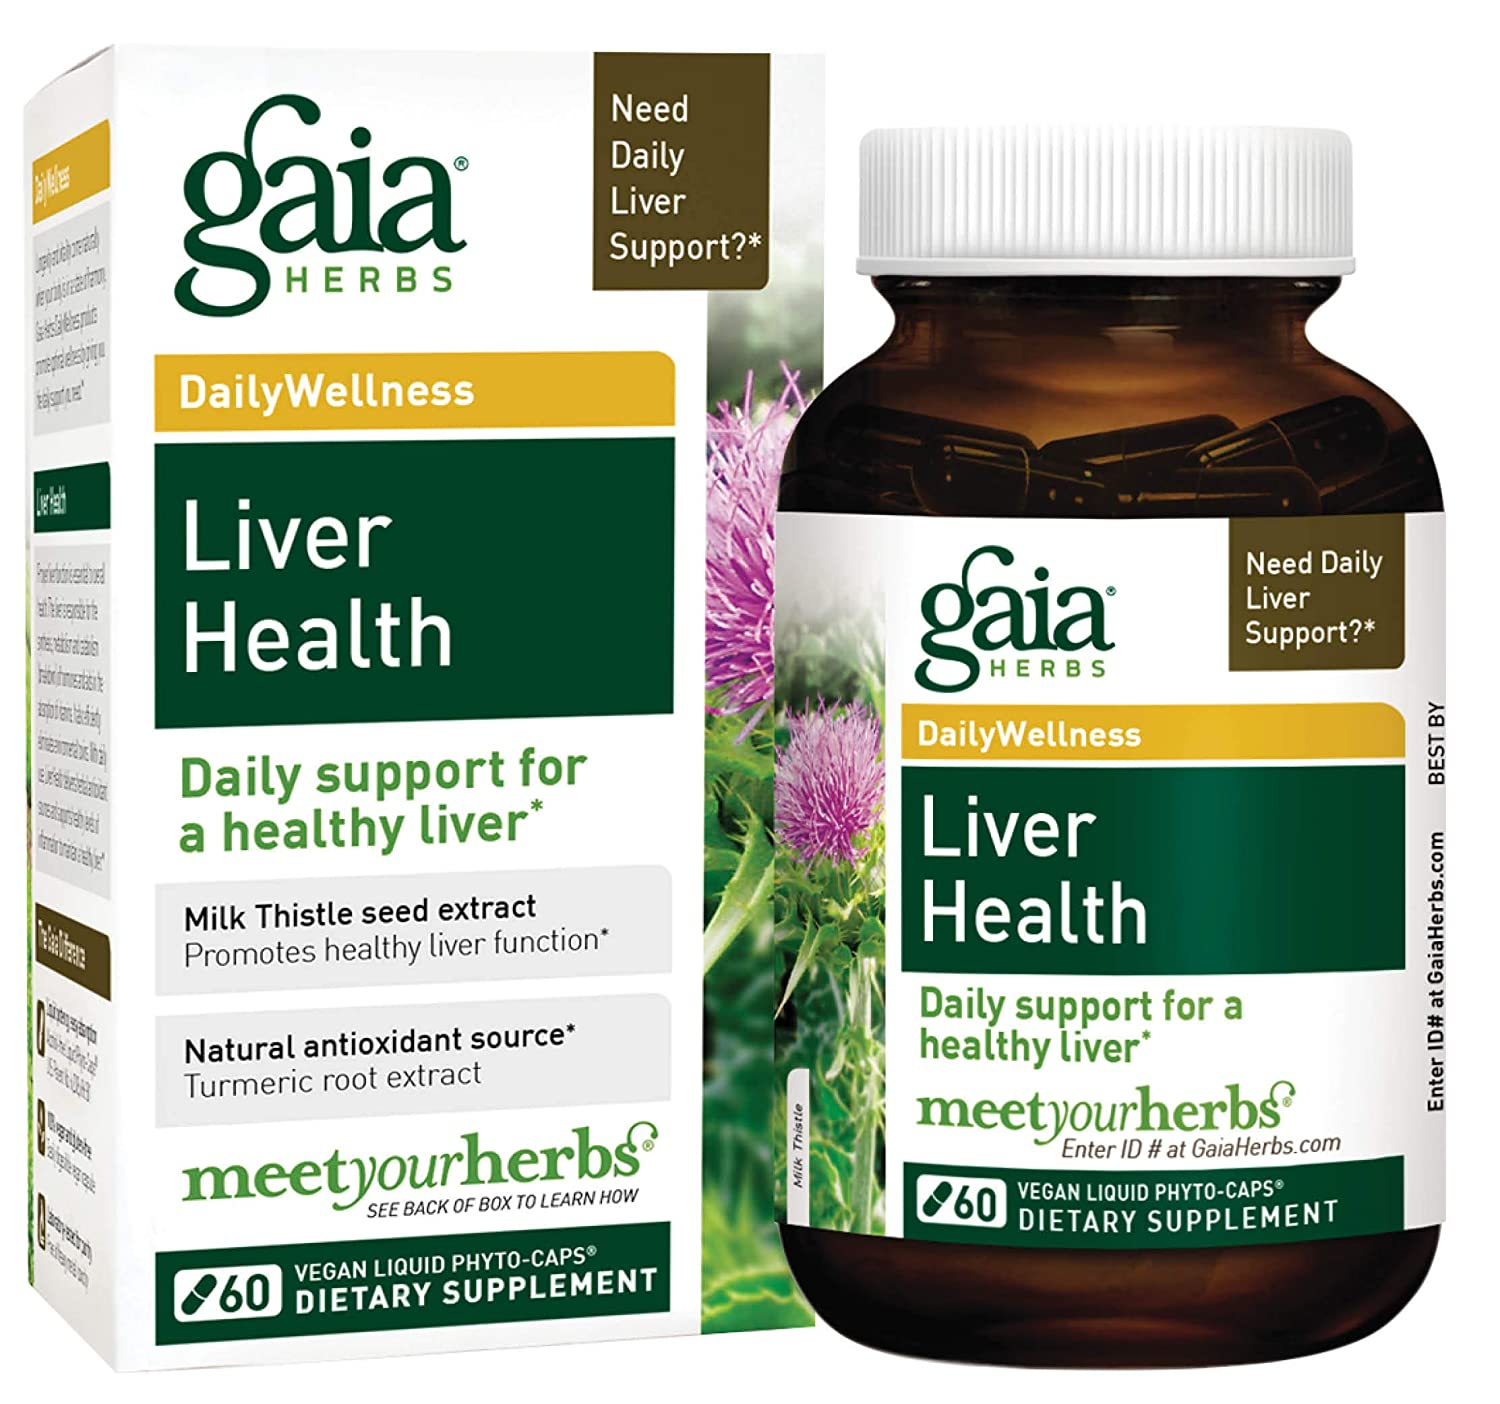 Gaia Herbs Liver Health Vegan Liquid Capsules, 60 Count – Daily Liver Detox Supplement, Antioxidant Source with Organic Milk Thistle, Turmeric Curcumins , Licorice Root